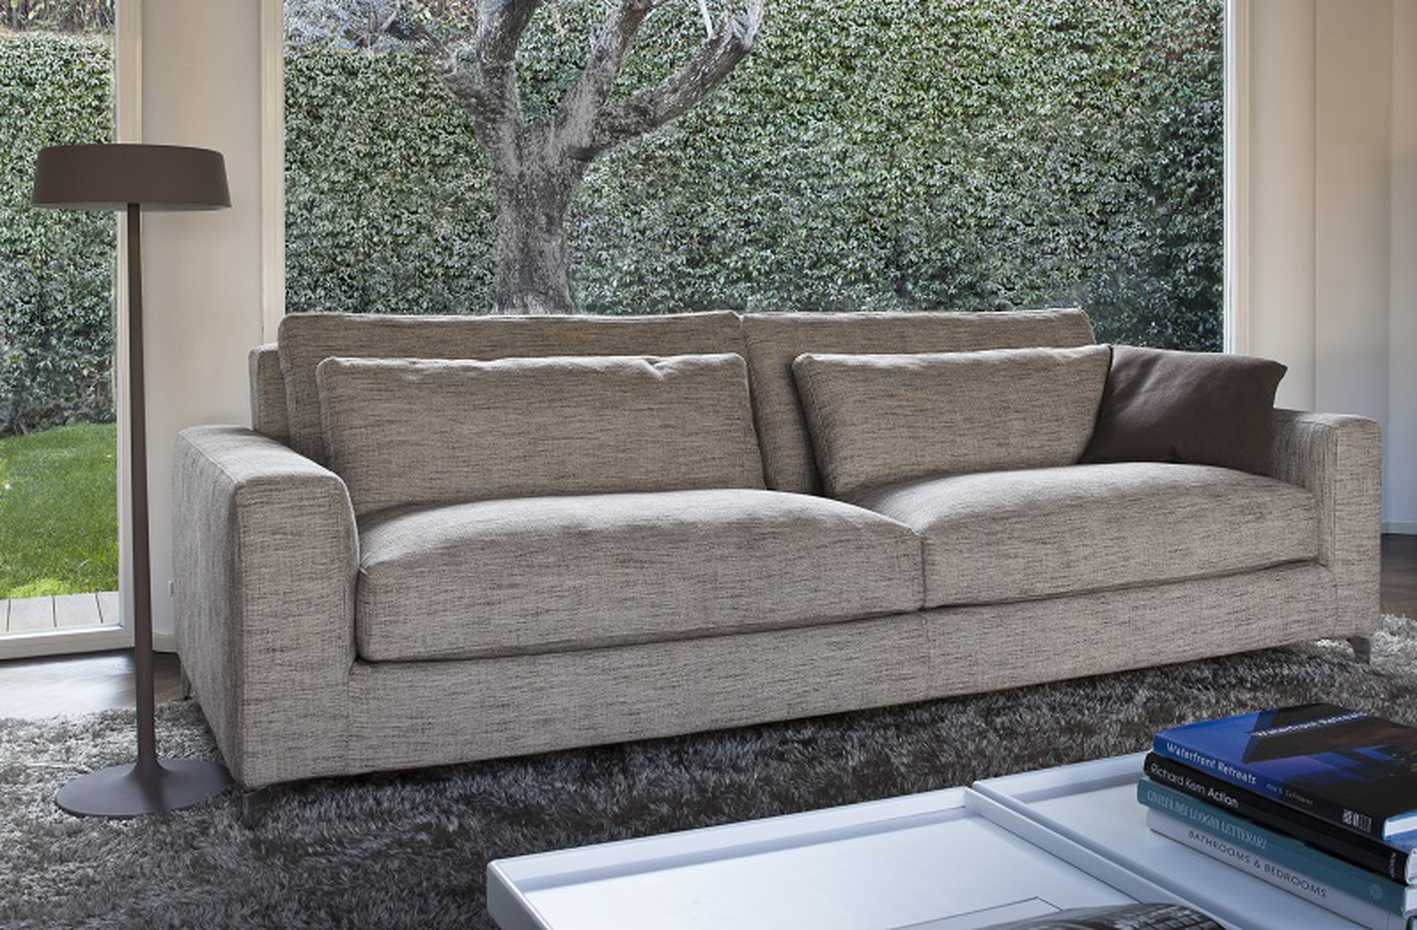 Zone Comfort XL by Vibieffe product image 2